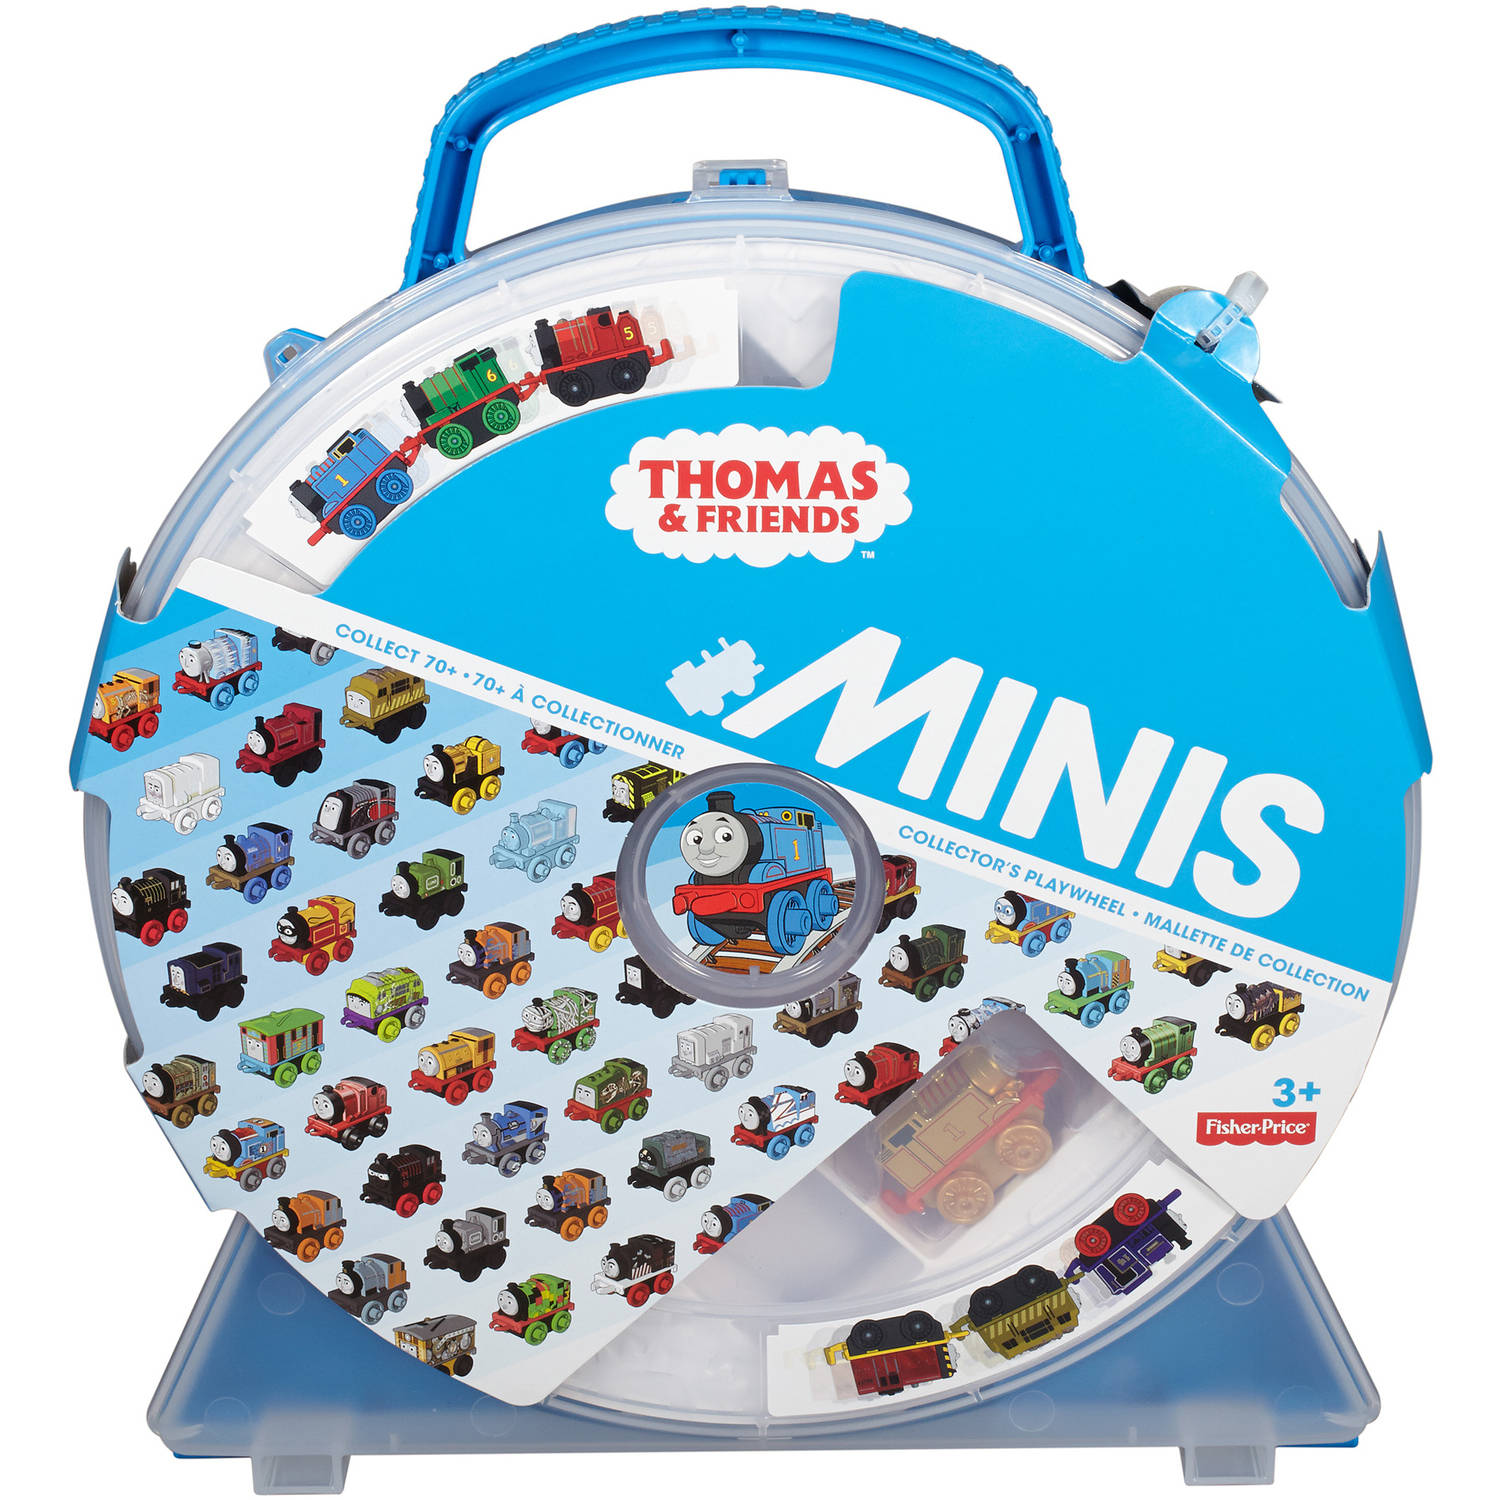 Thomas Amp Friends Minis Collector S Playwheel Walmart Com